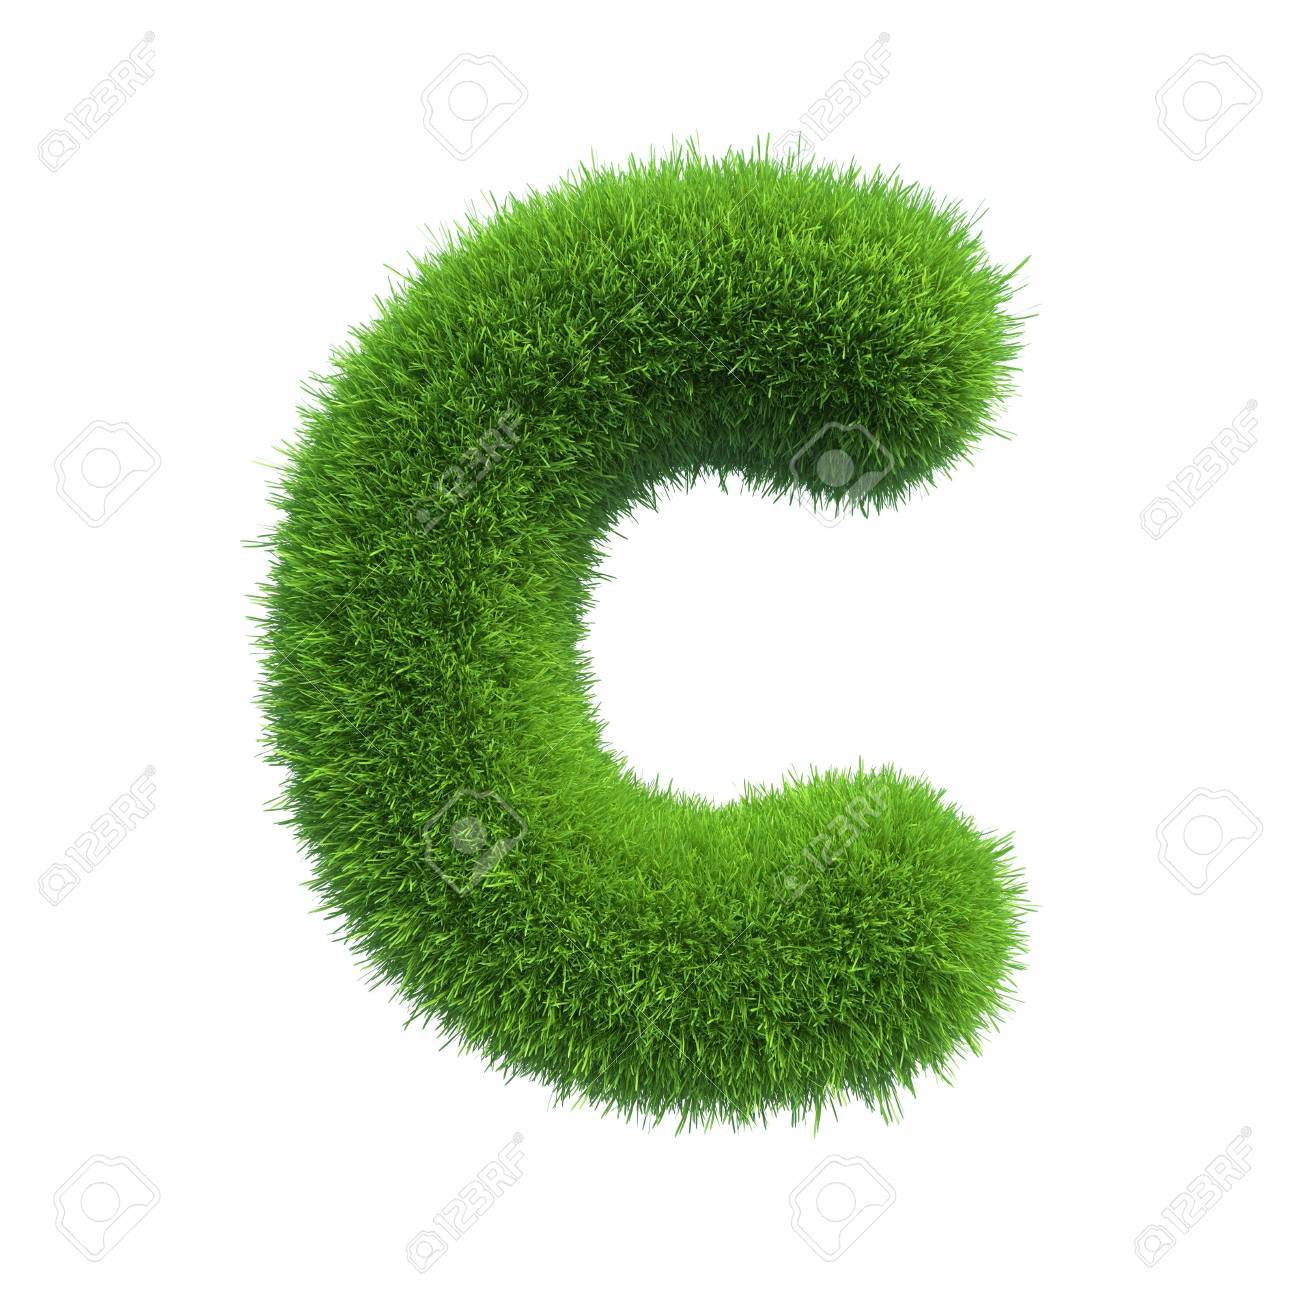 Letter of green fresh grass isolated on a white background - 34448998